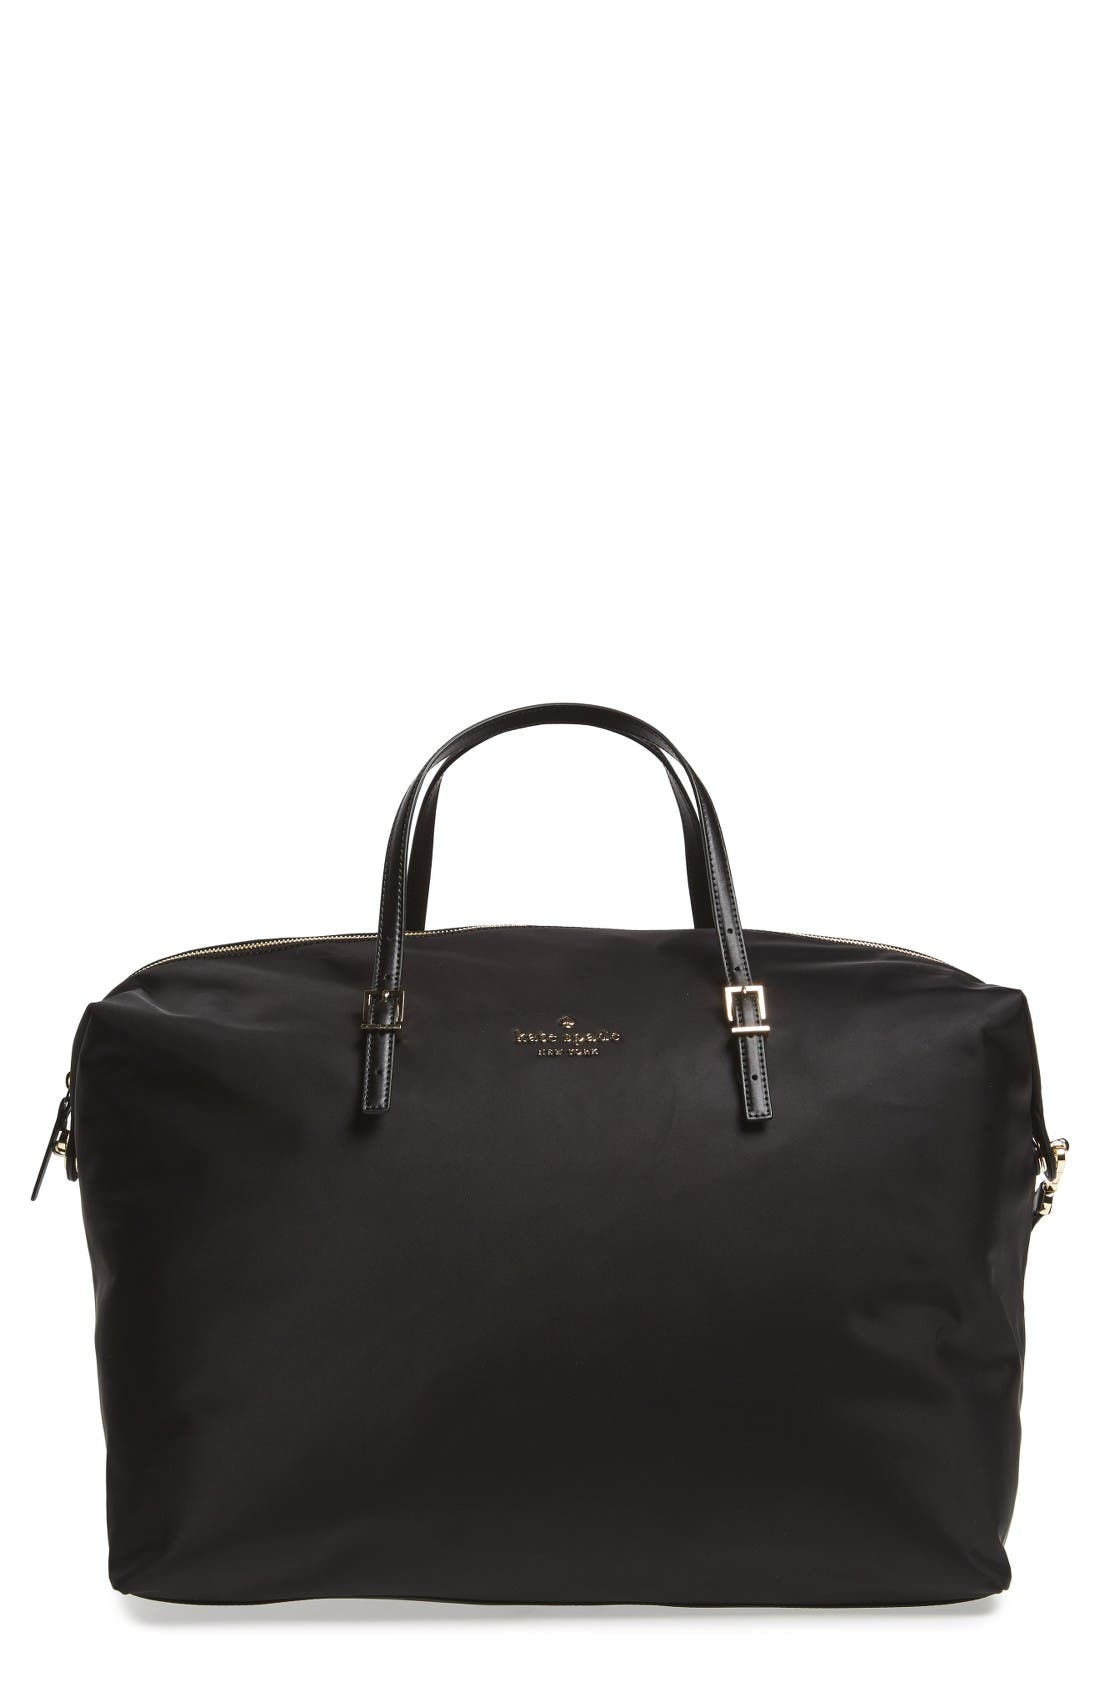 KATE SPADE NEW YORK watson lane large lyla